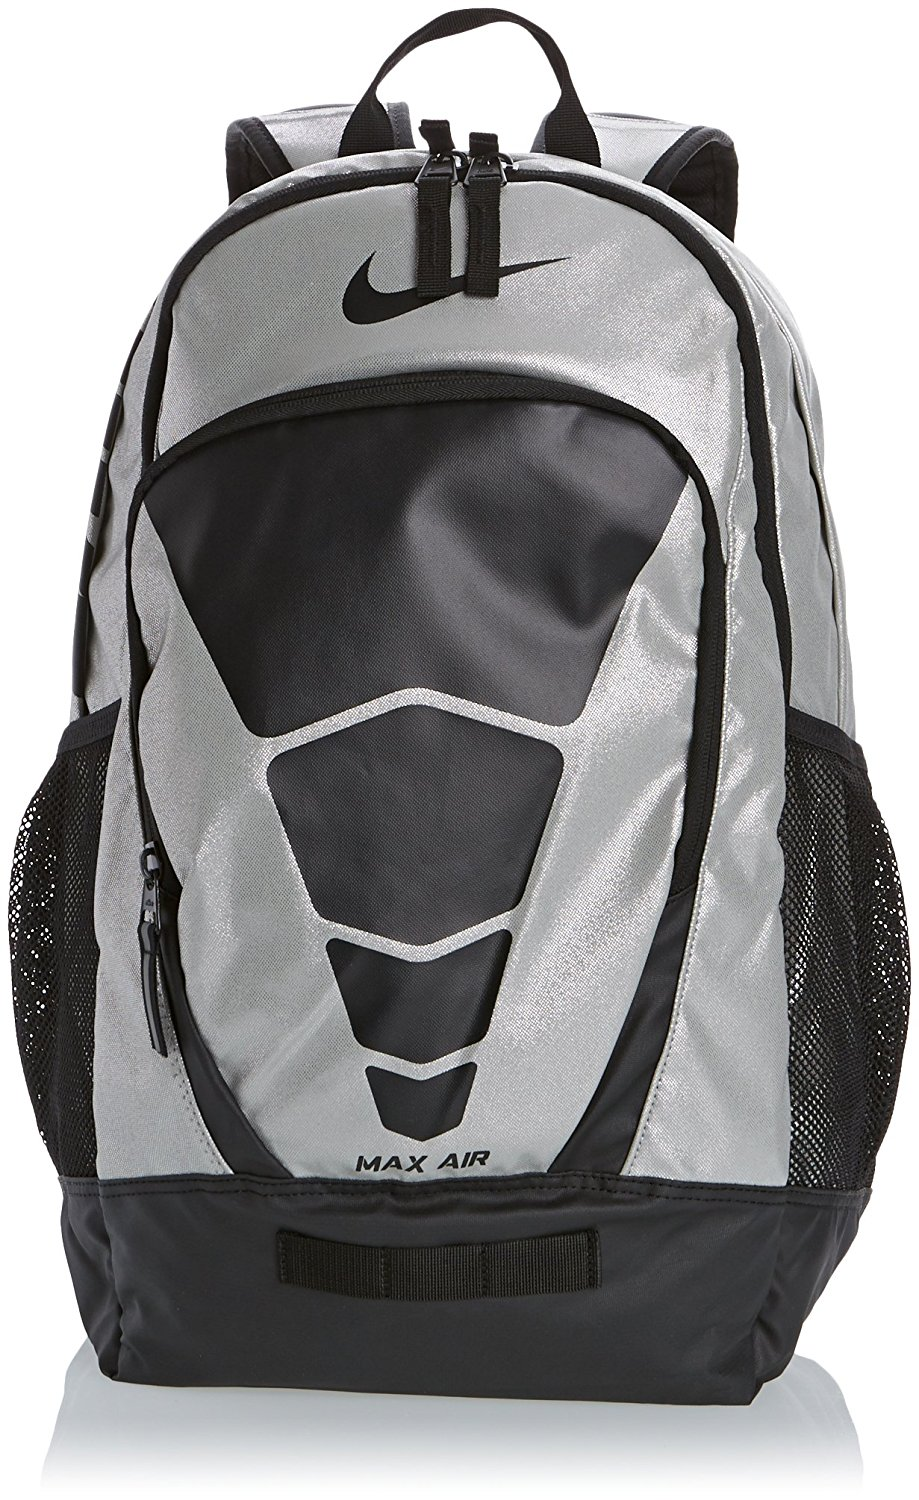 d75f5140206c Get Quotations · NIKE Unisex MAX AIR Backpack Book Bag BA4983-001